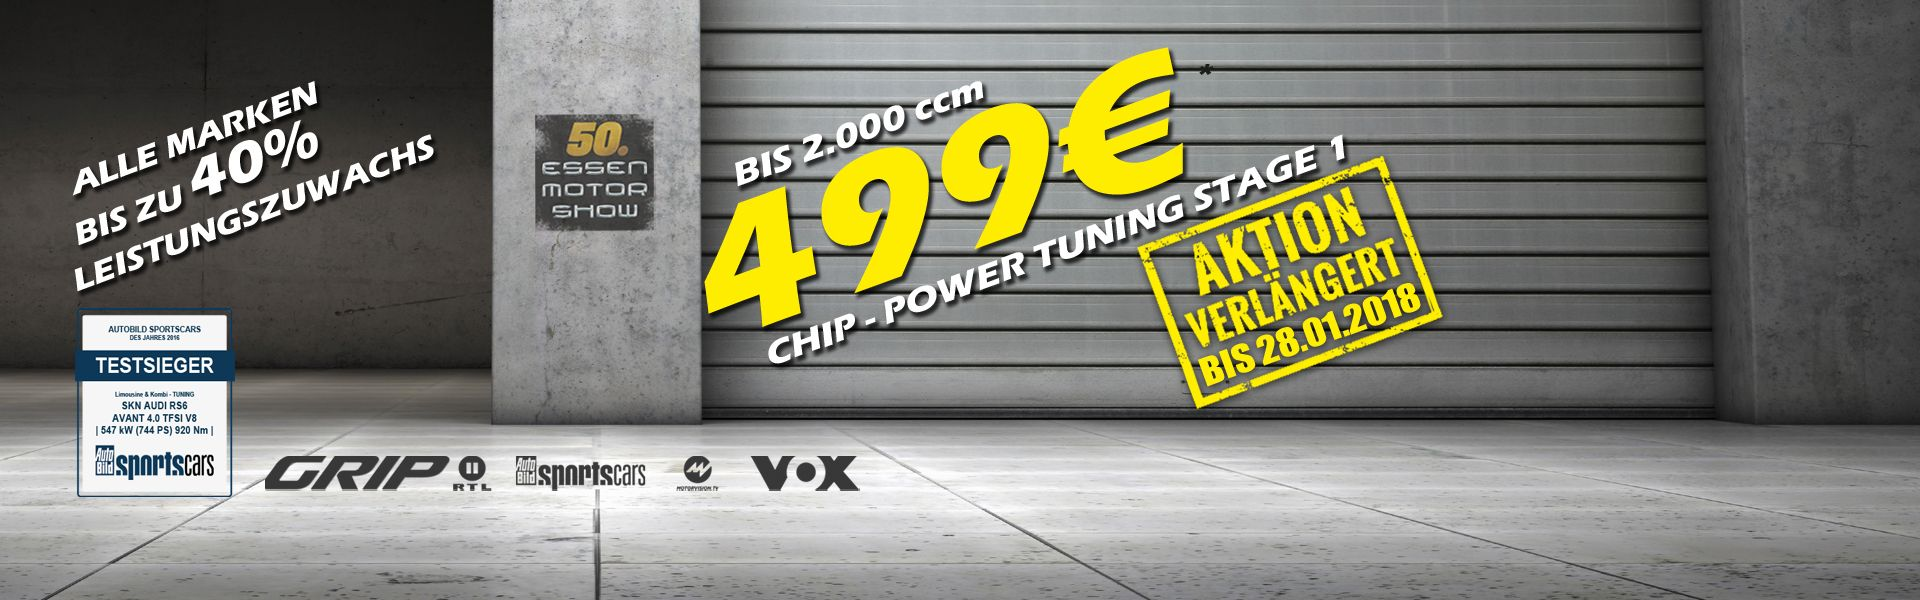 CHN TUNING LEVEL 1 FOR 499€*